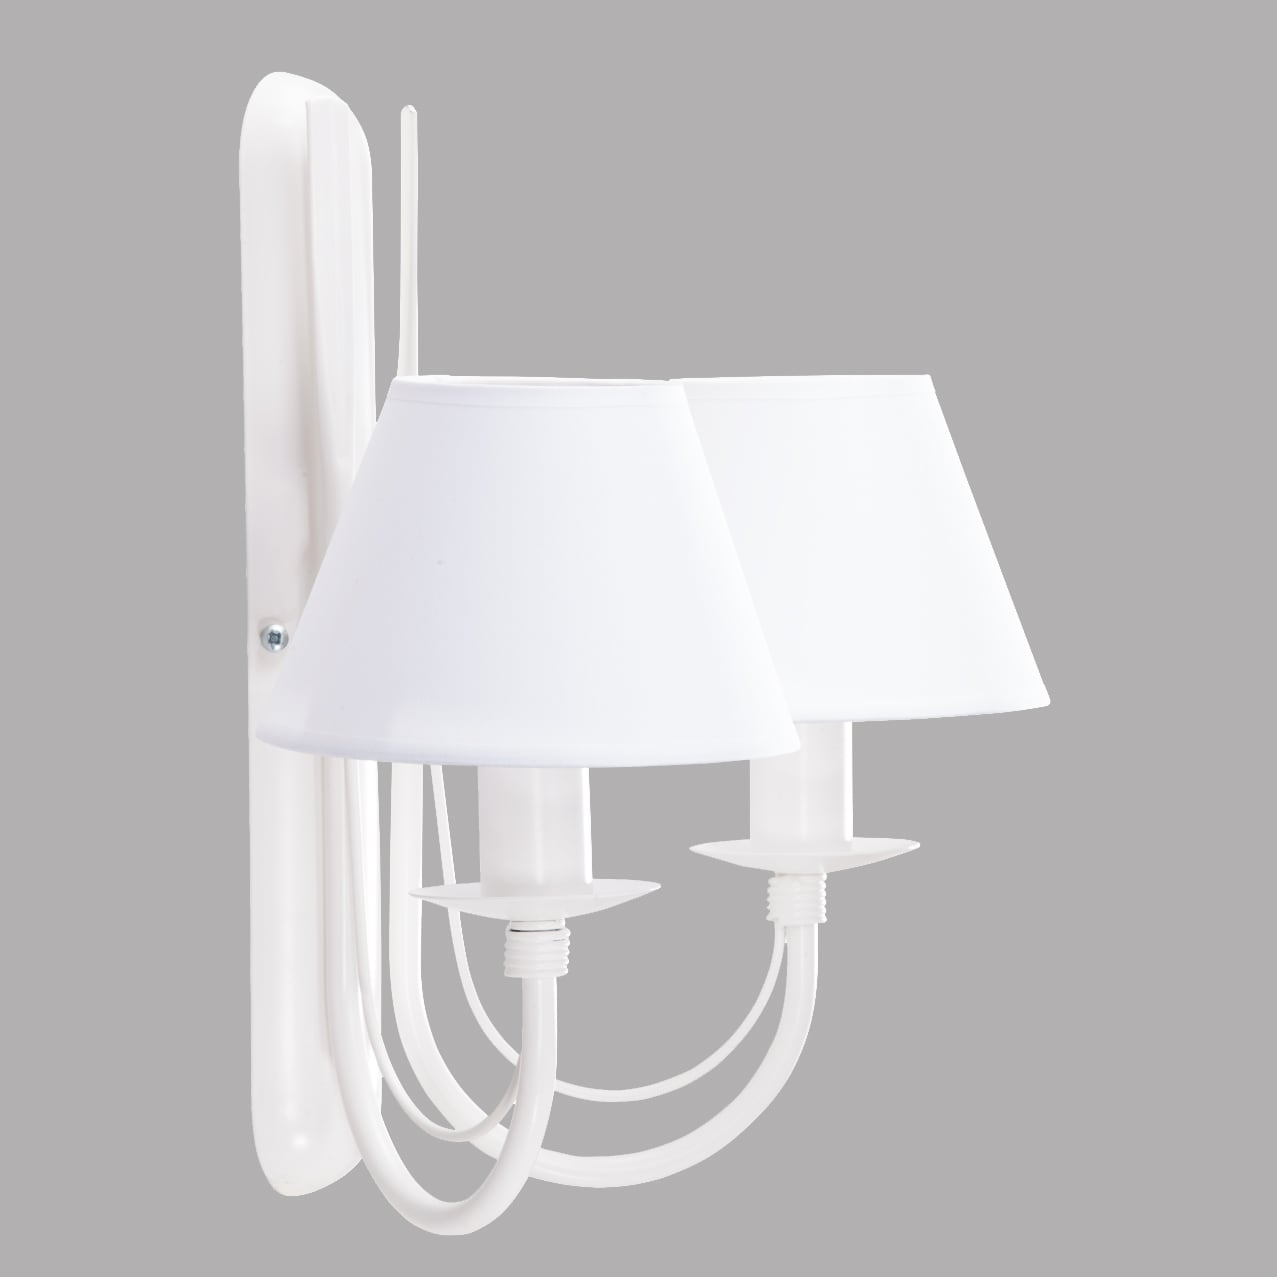 Double Wall Lamp BASJAN No. 2156